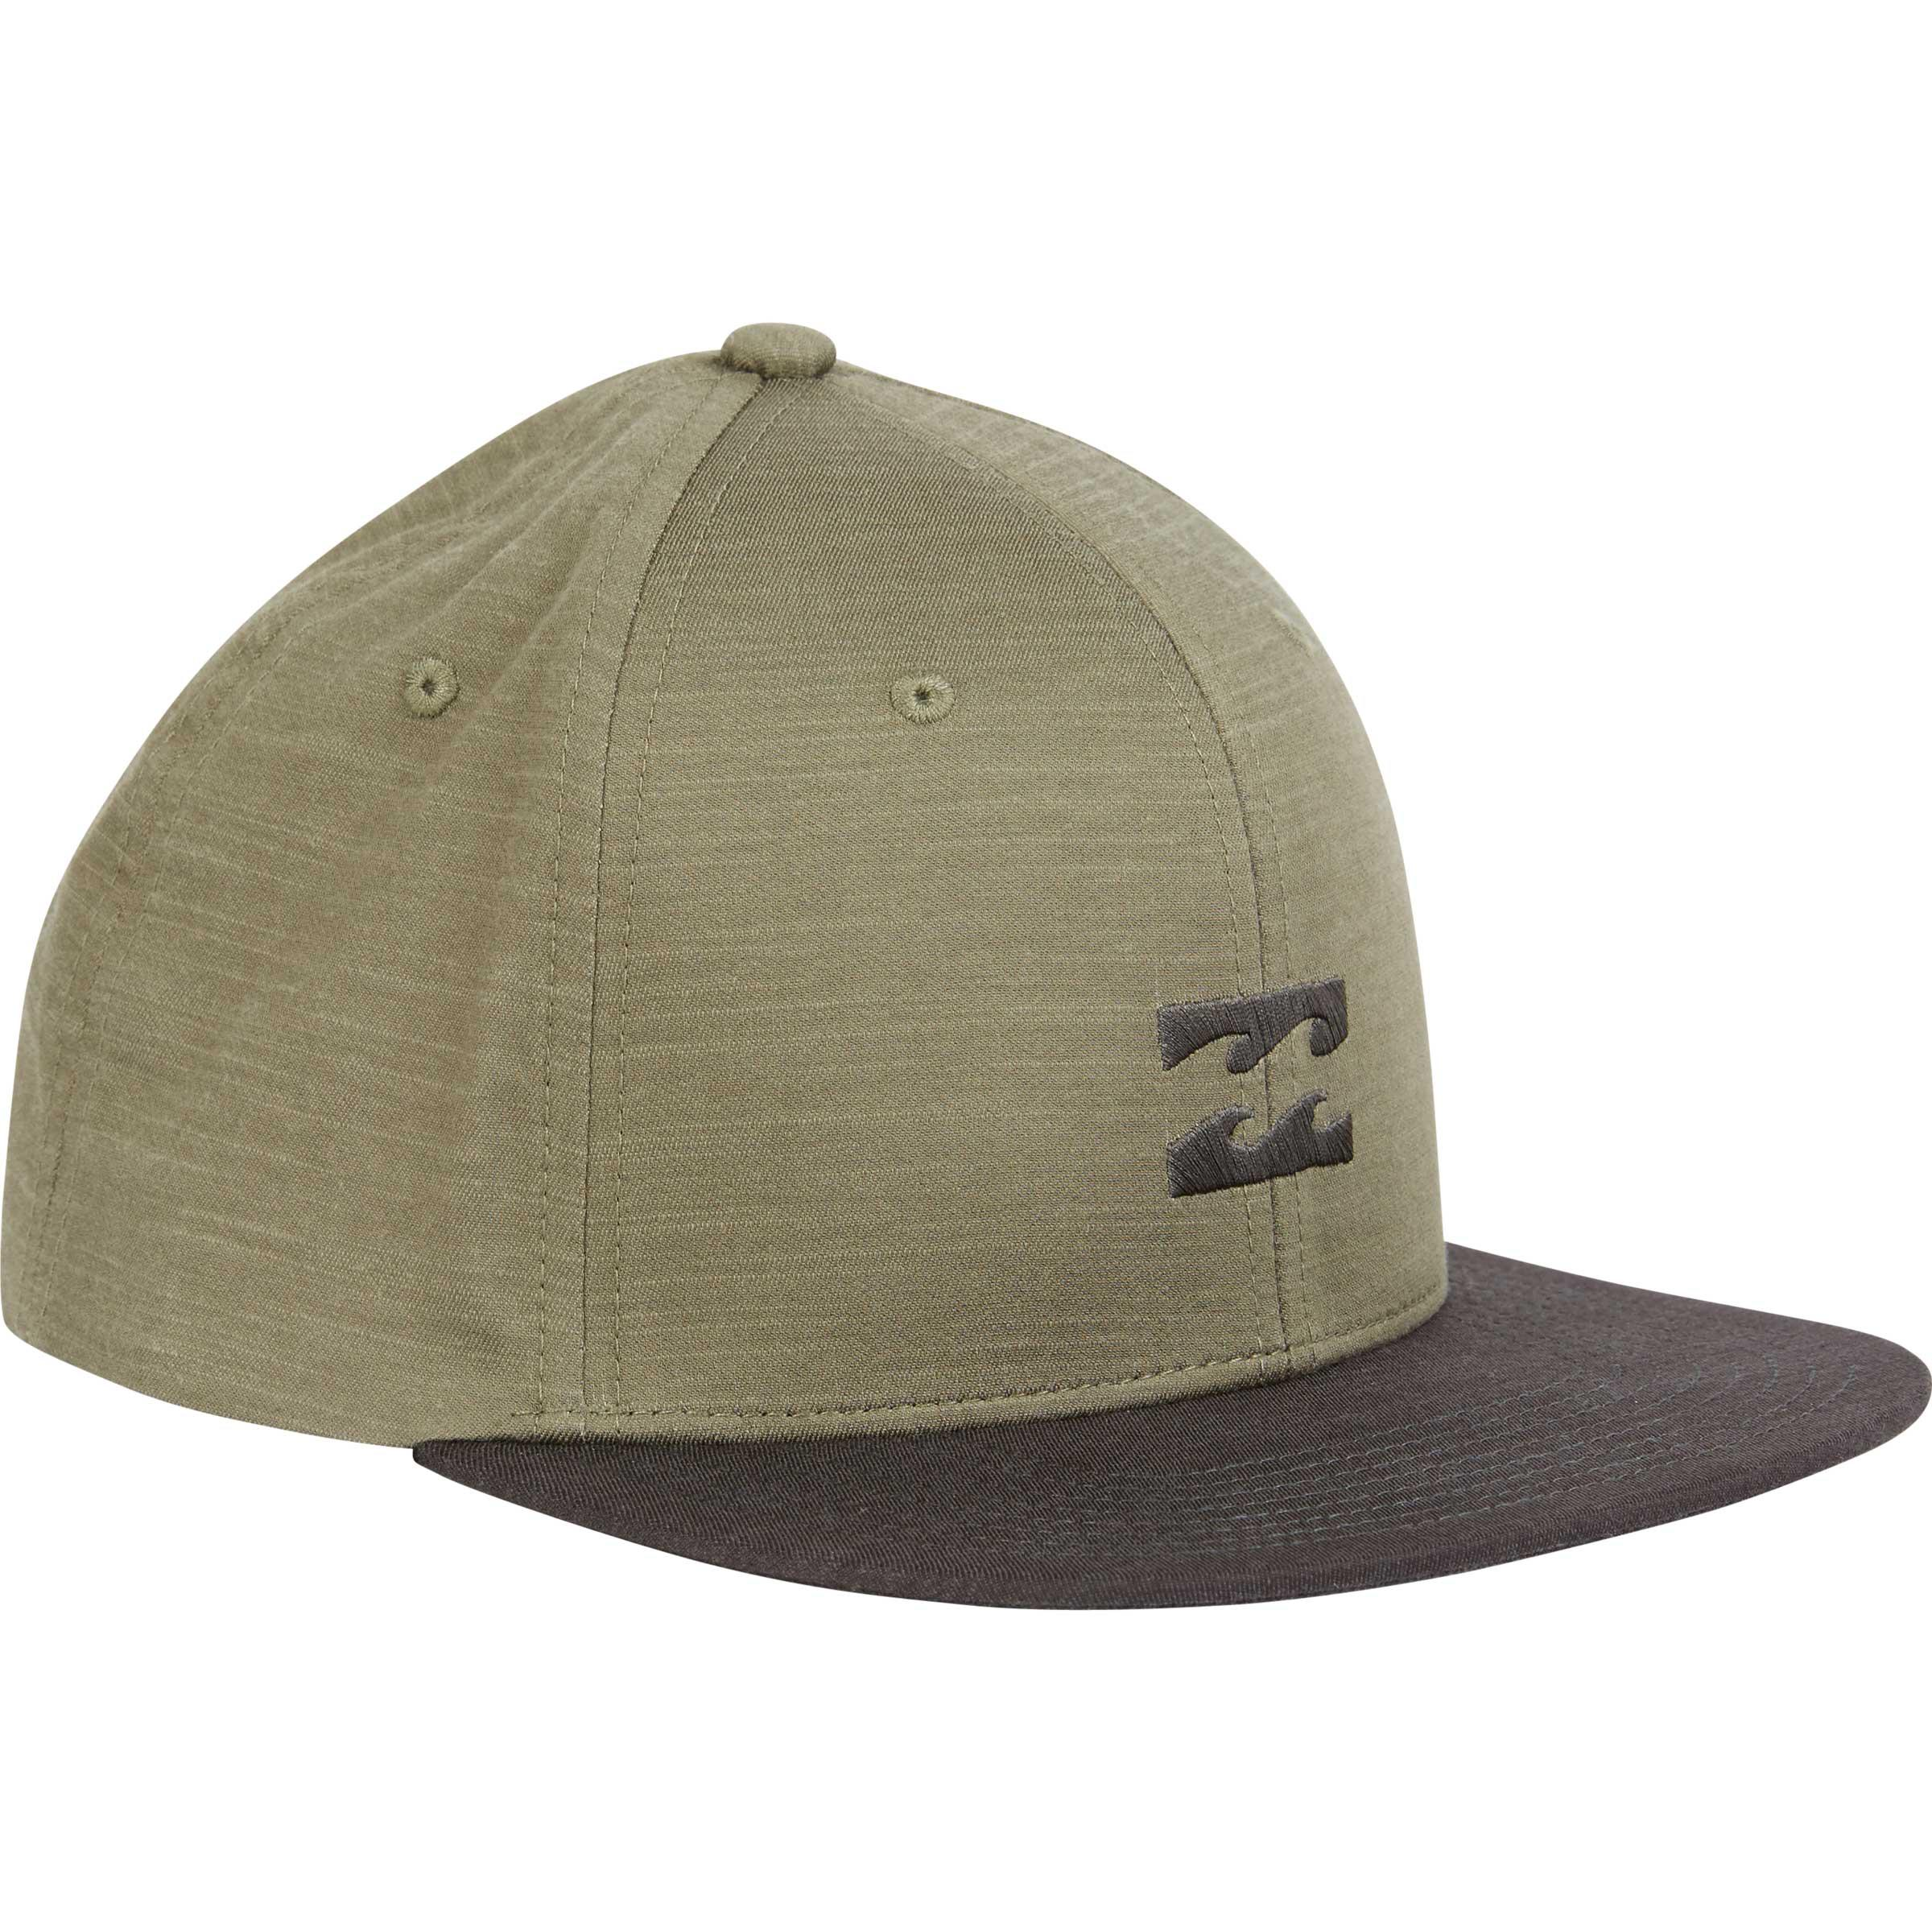 official new photos 2018 shoes Billabong All Day Heather Snapback Hat in Light Military (Green ...